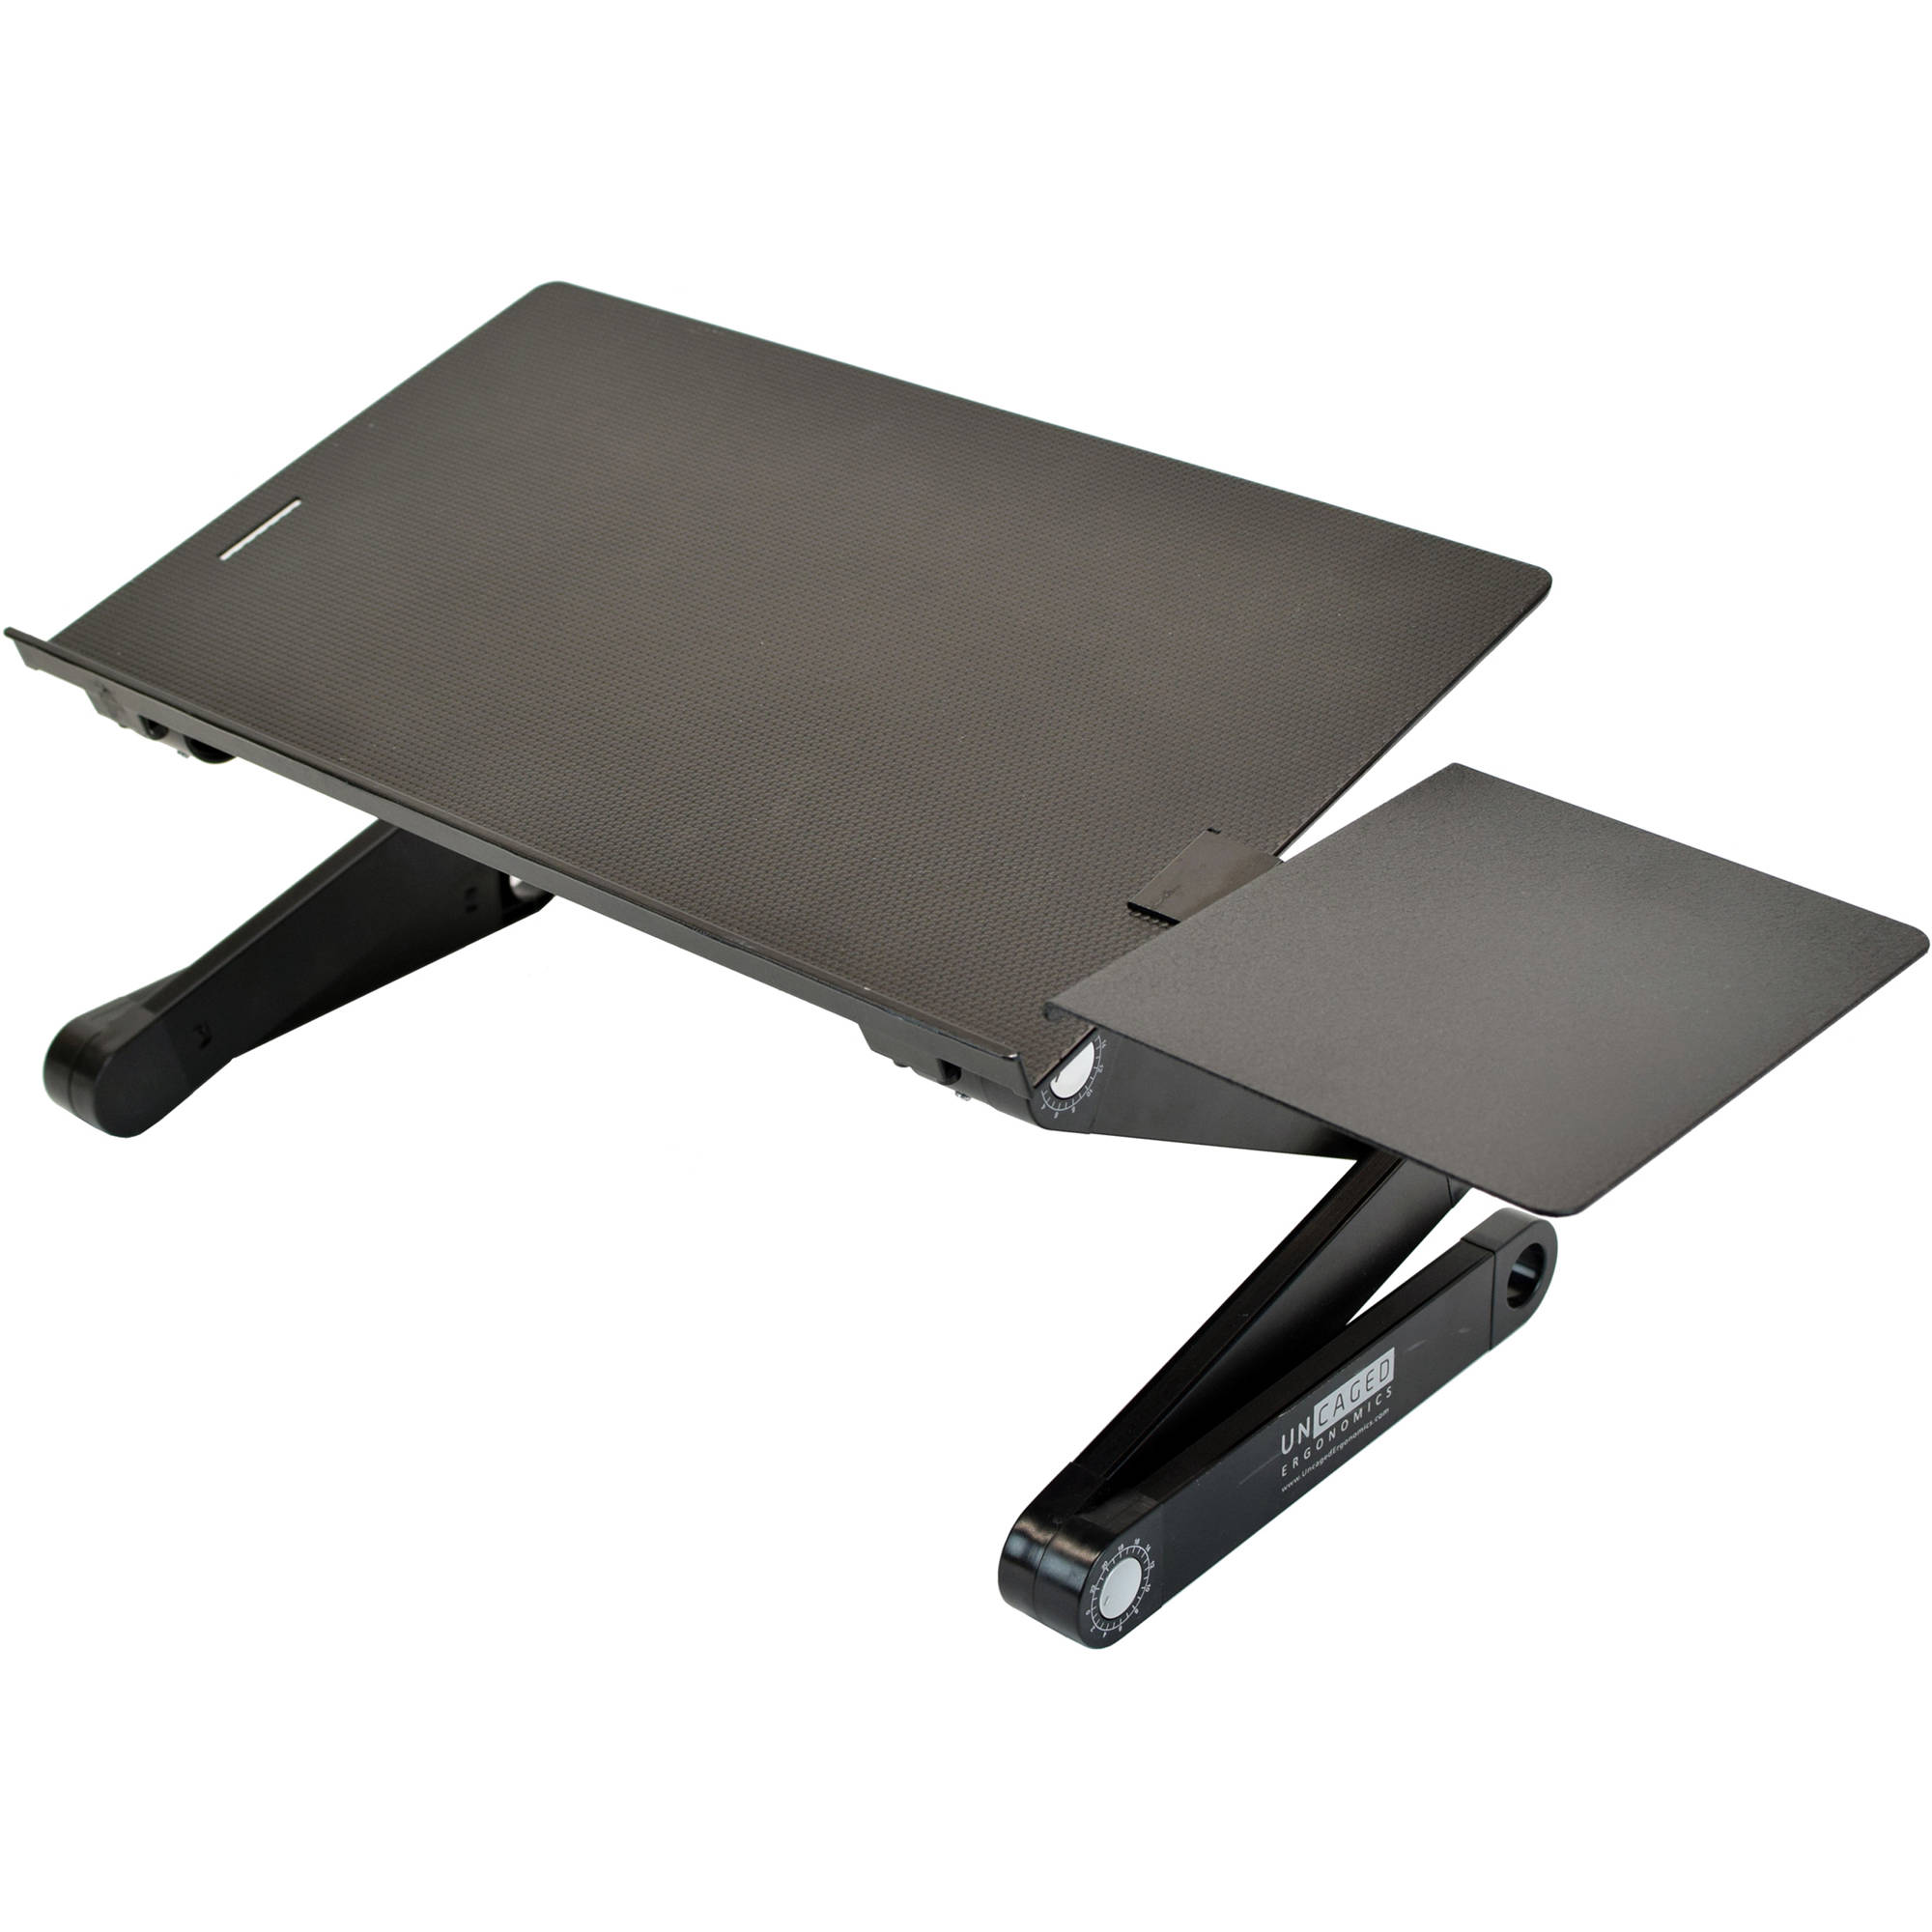 Uncaged Ergonomics Workez Best Laptop Stand Lap Desk Webls B B H